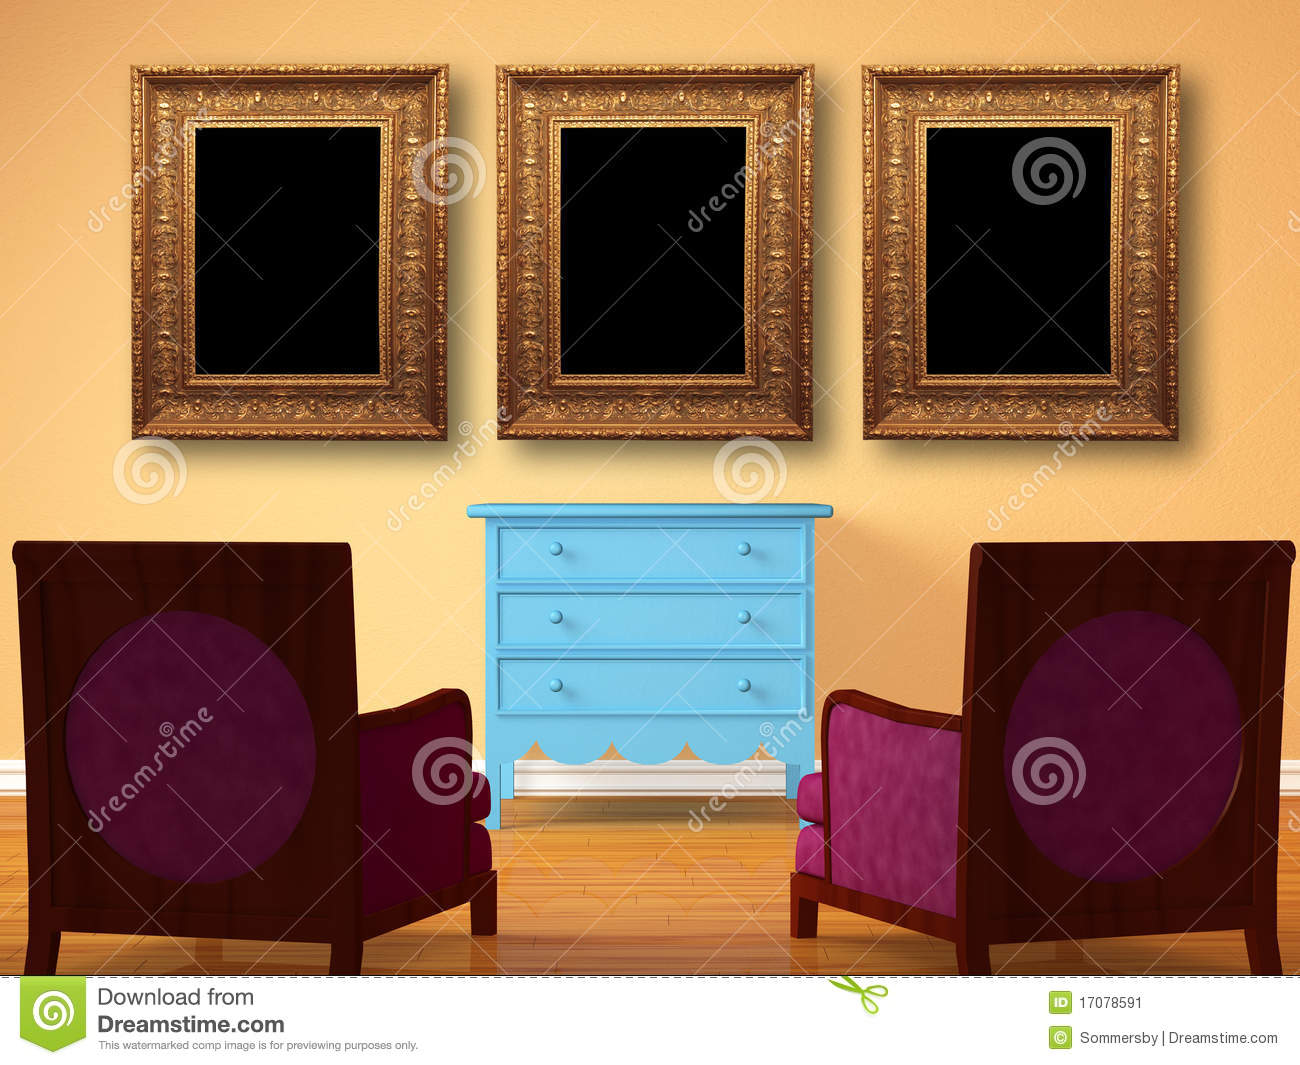 Two chairs opposite wooden bedside with frames